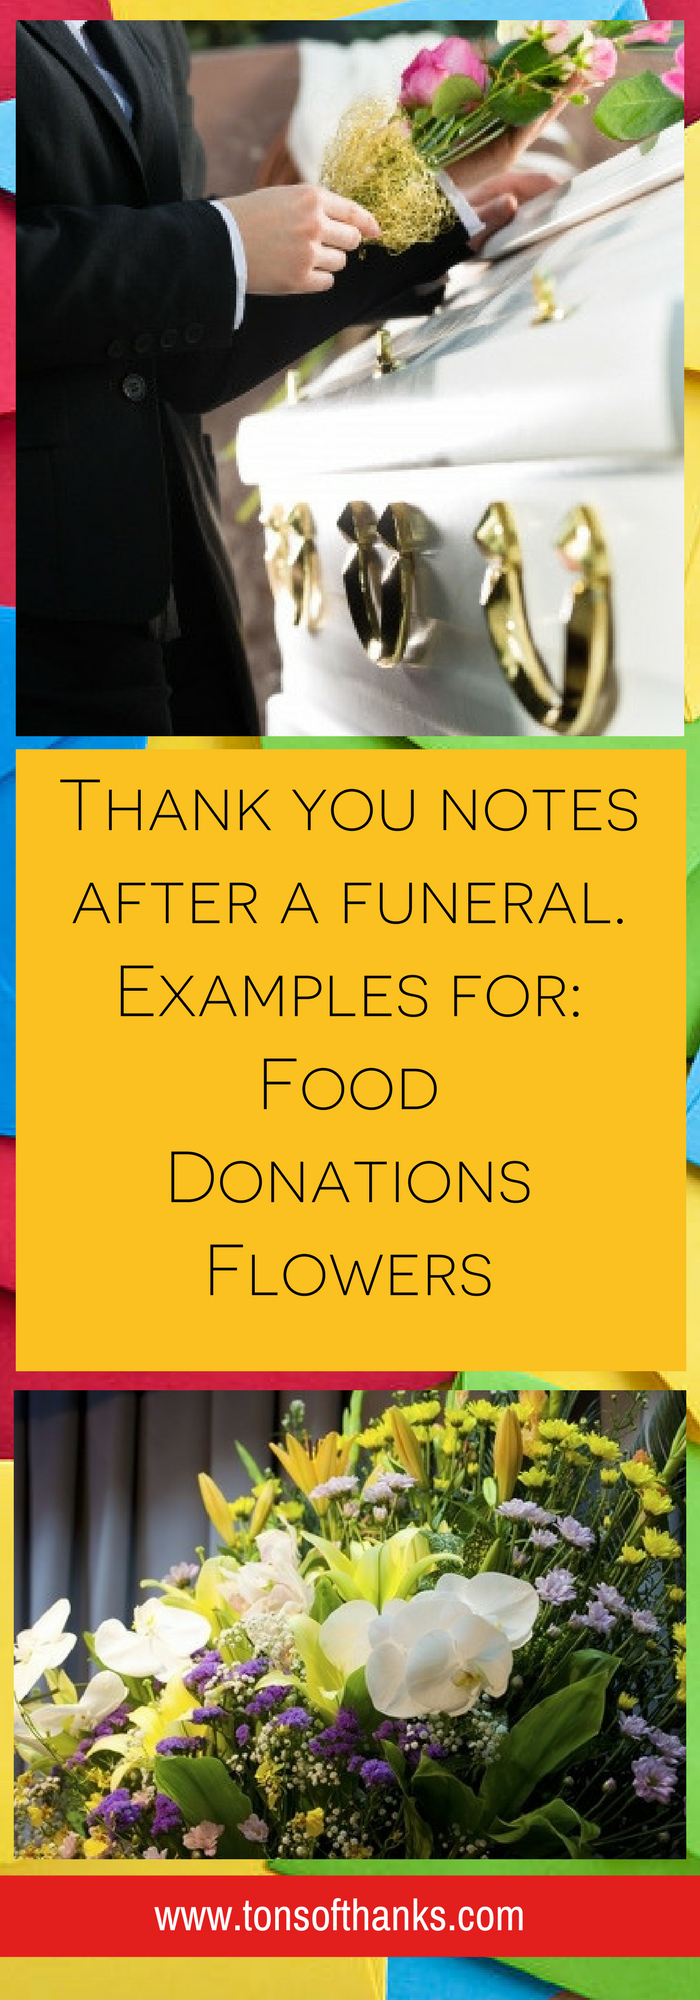 Funeral Thank You Note Wording Examples  Funeral Note And Cards